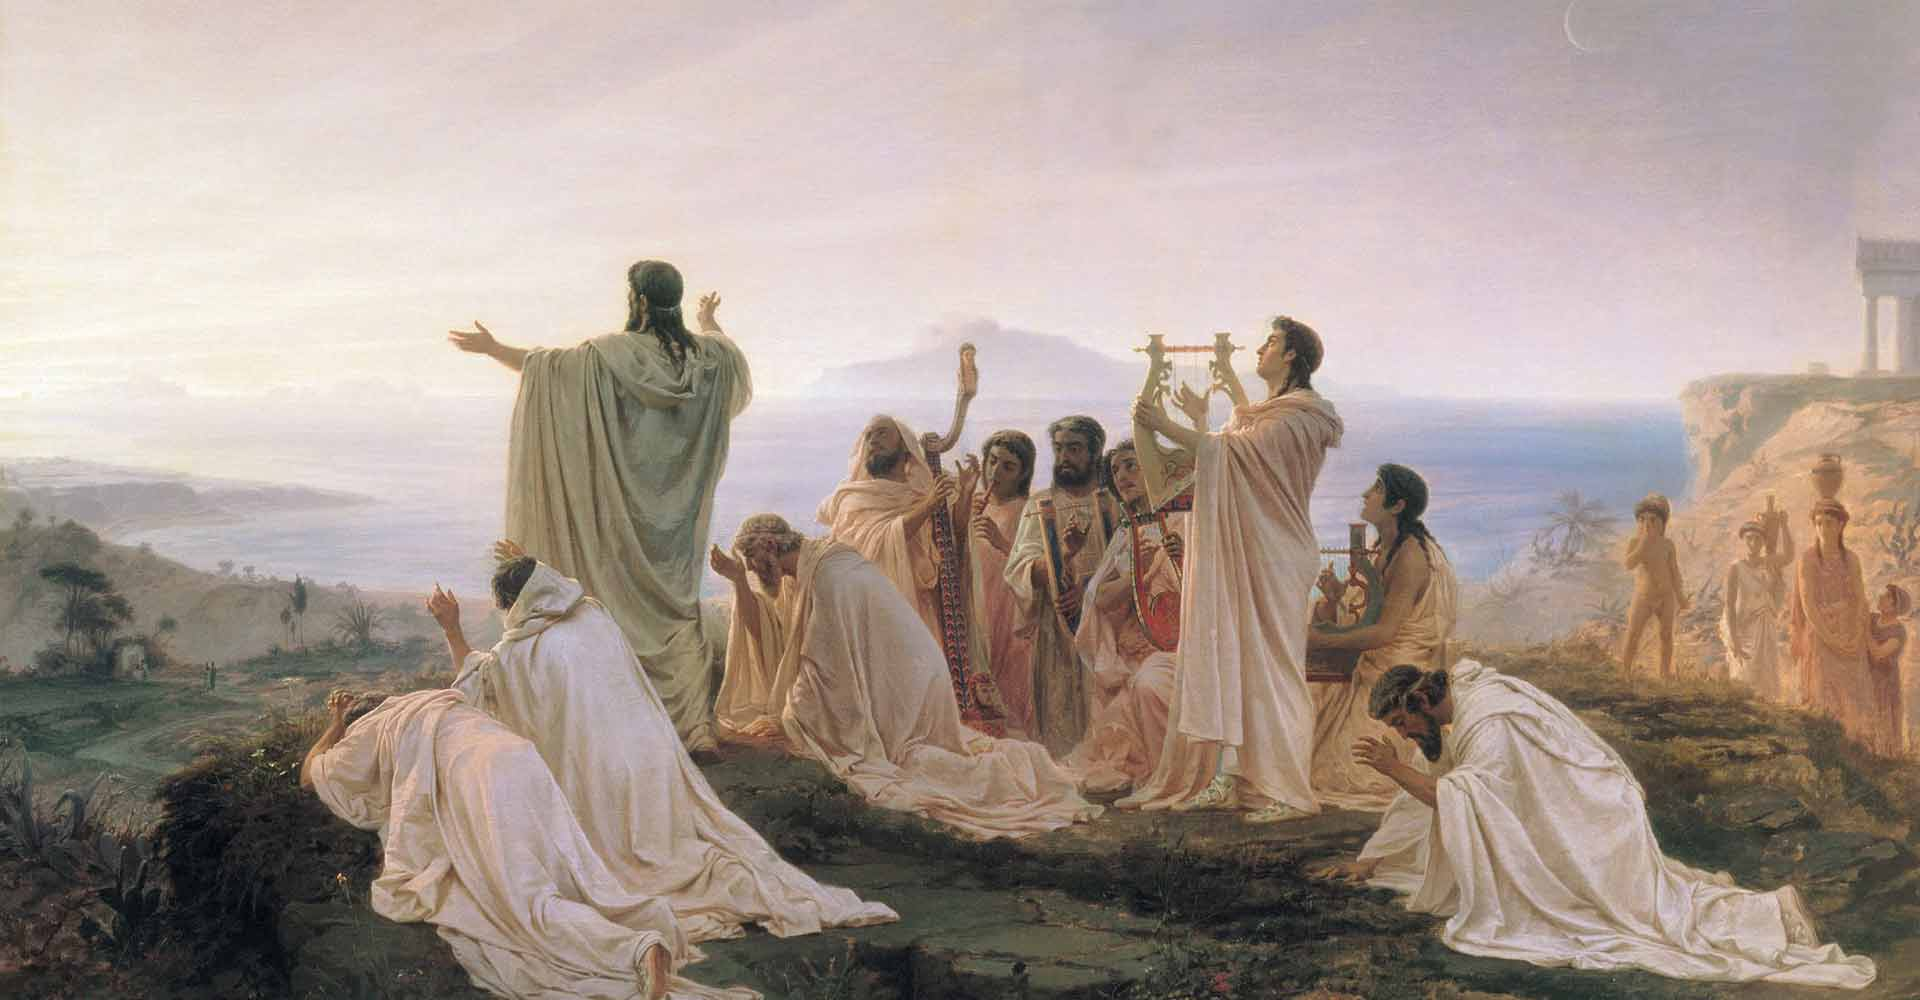 Christ teaches others to praise and worship to God